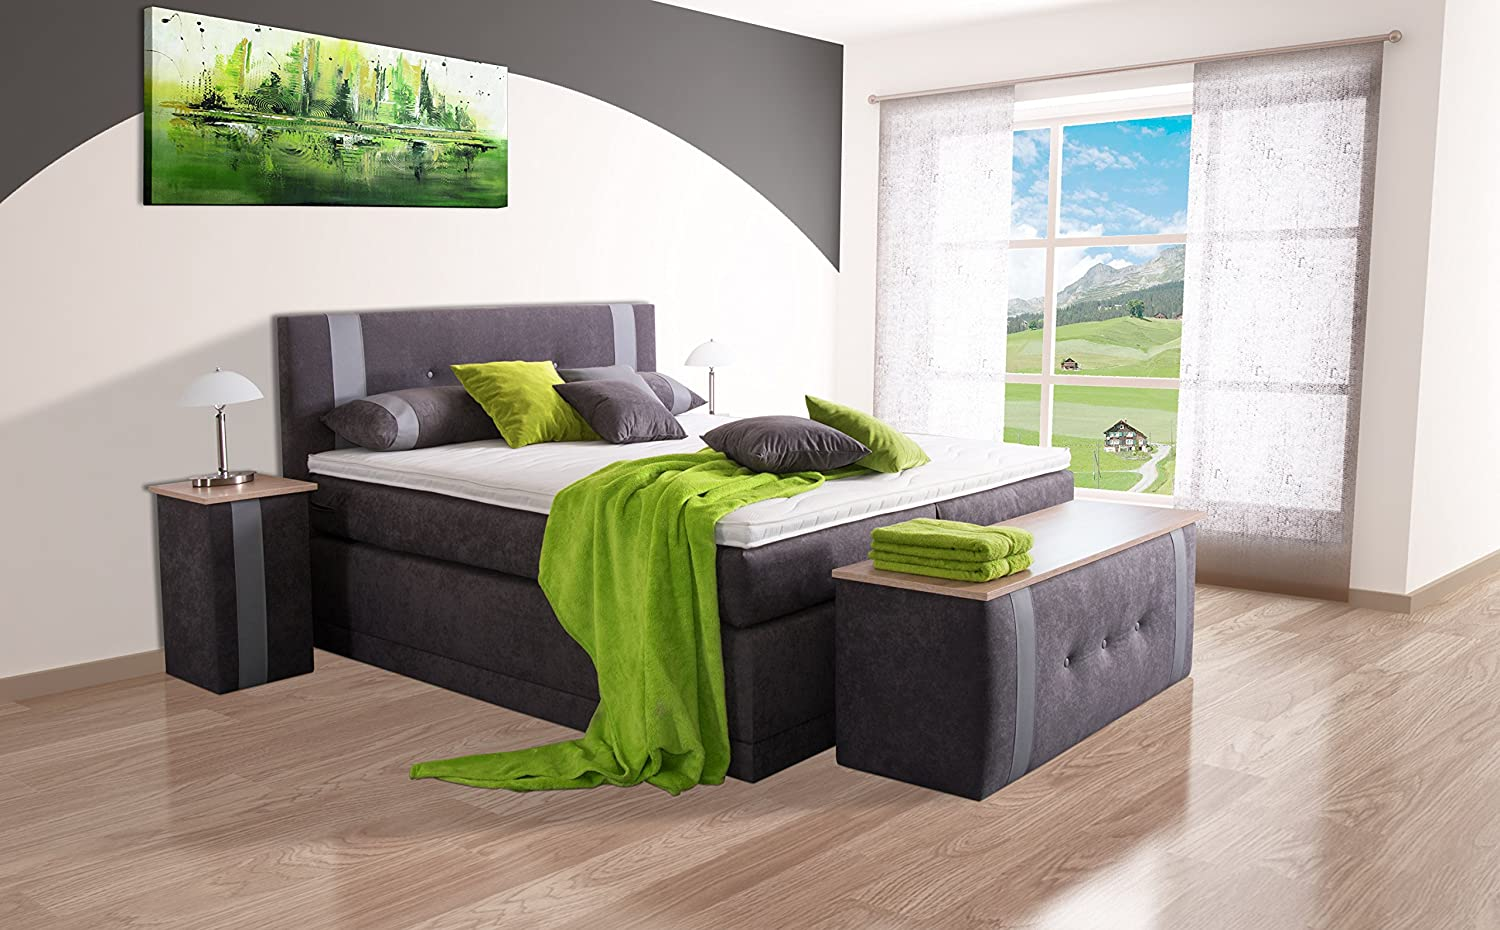 boxspringbett lupo sb auch mit bettkasten oder elektrisch erh ltlich 80x200cm 90x200cm. Black Bedroom Furniture Sets. Home Design Ideas